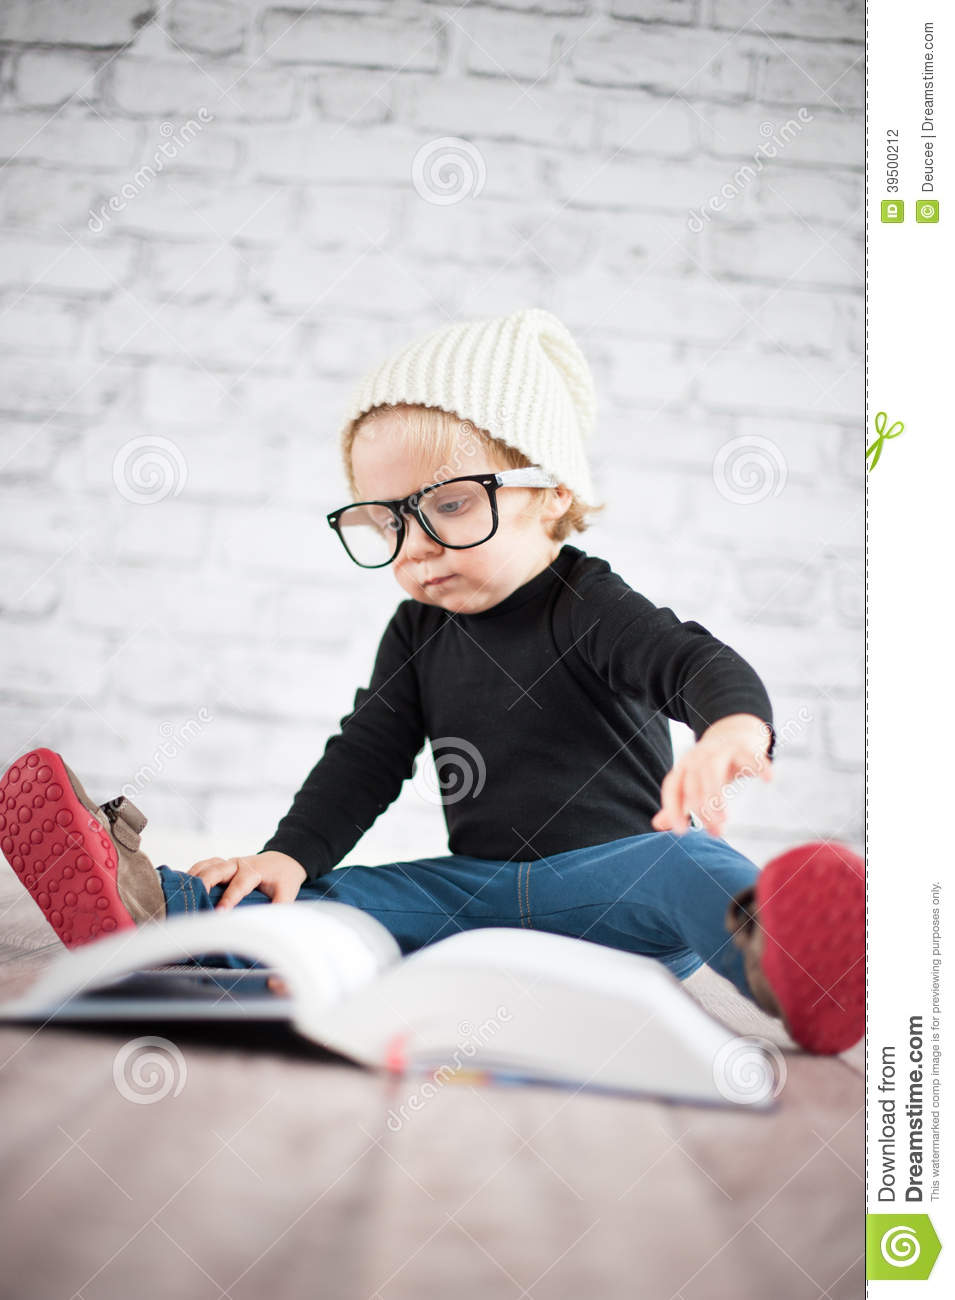 Download Study Hard With Nerd Glasses Stock Photo - Image of early, beautiful: 39500212